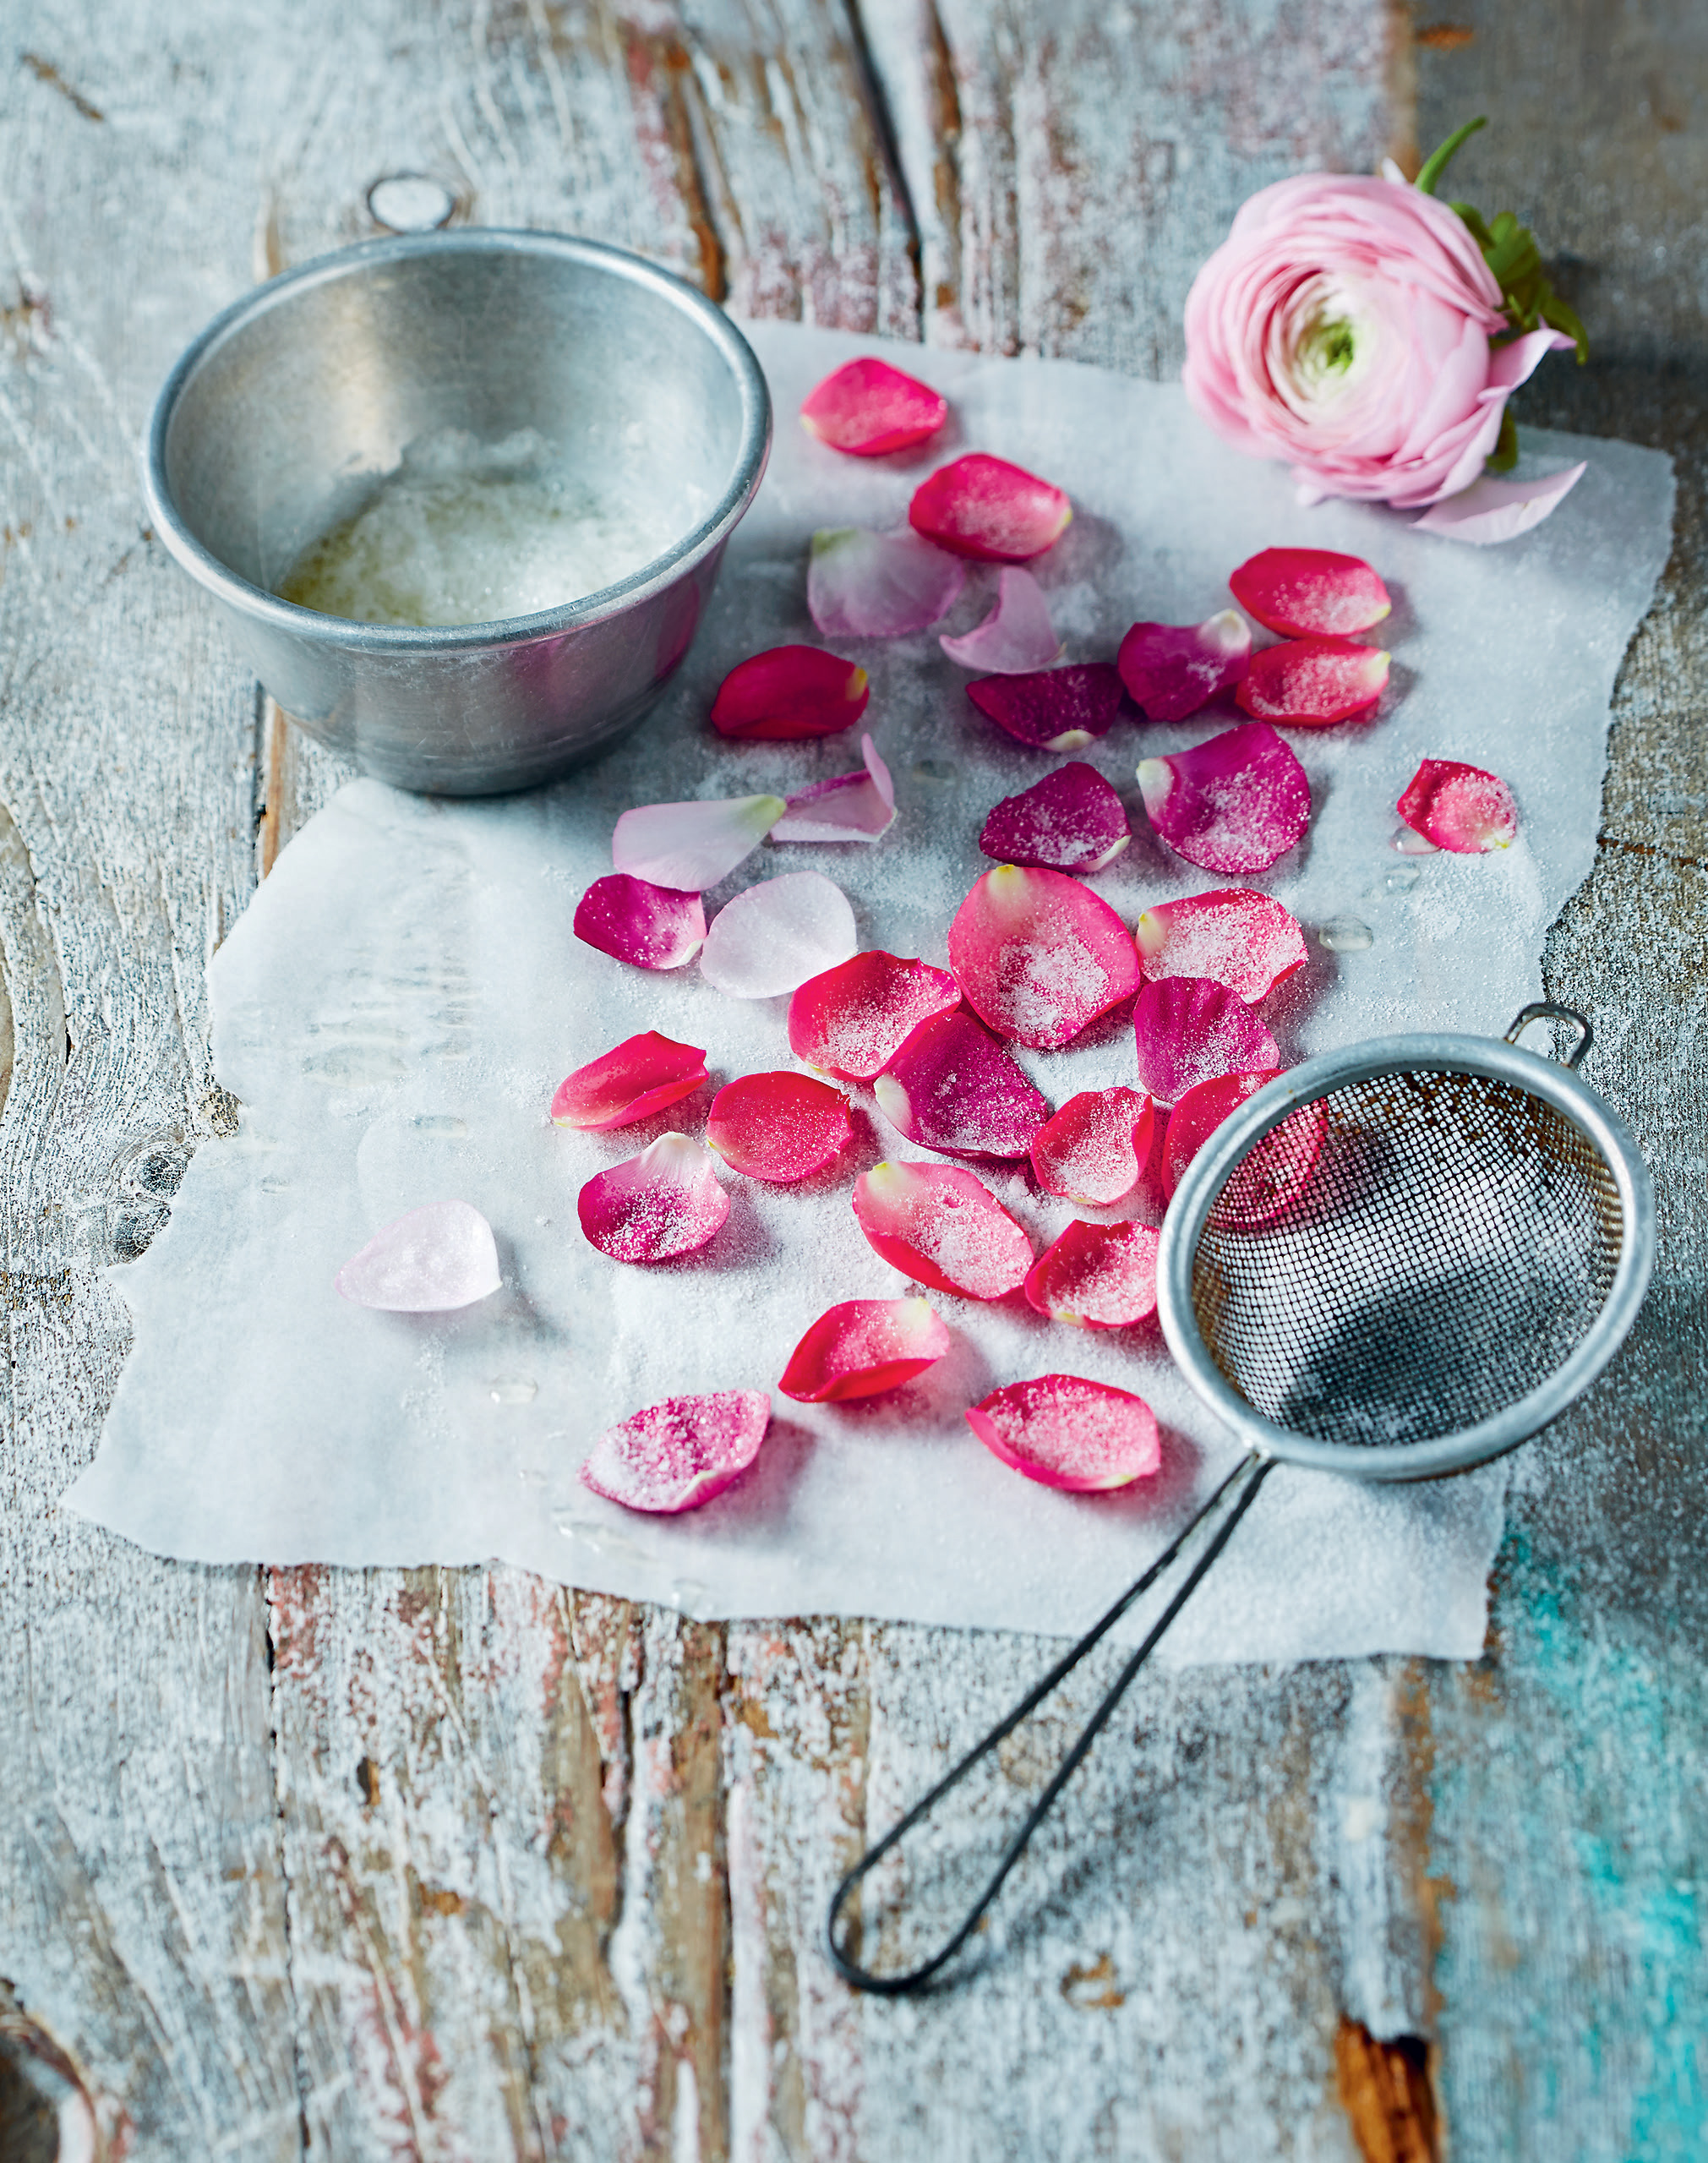 How to make crystallised rose petals